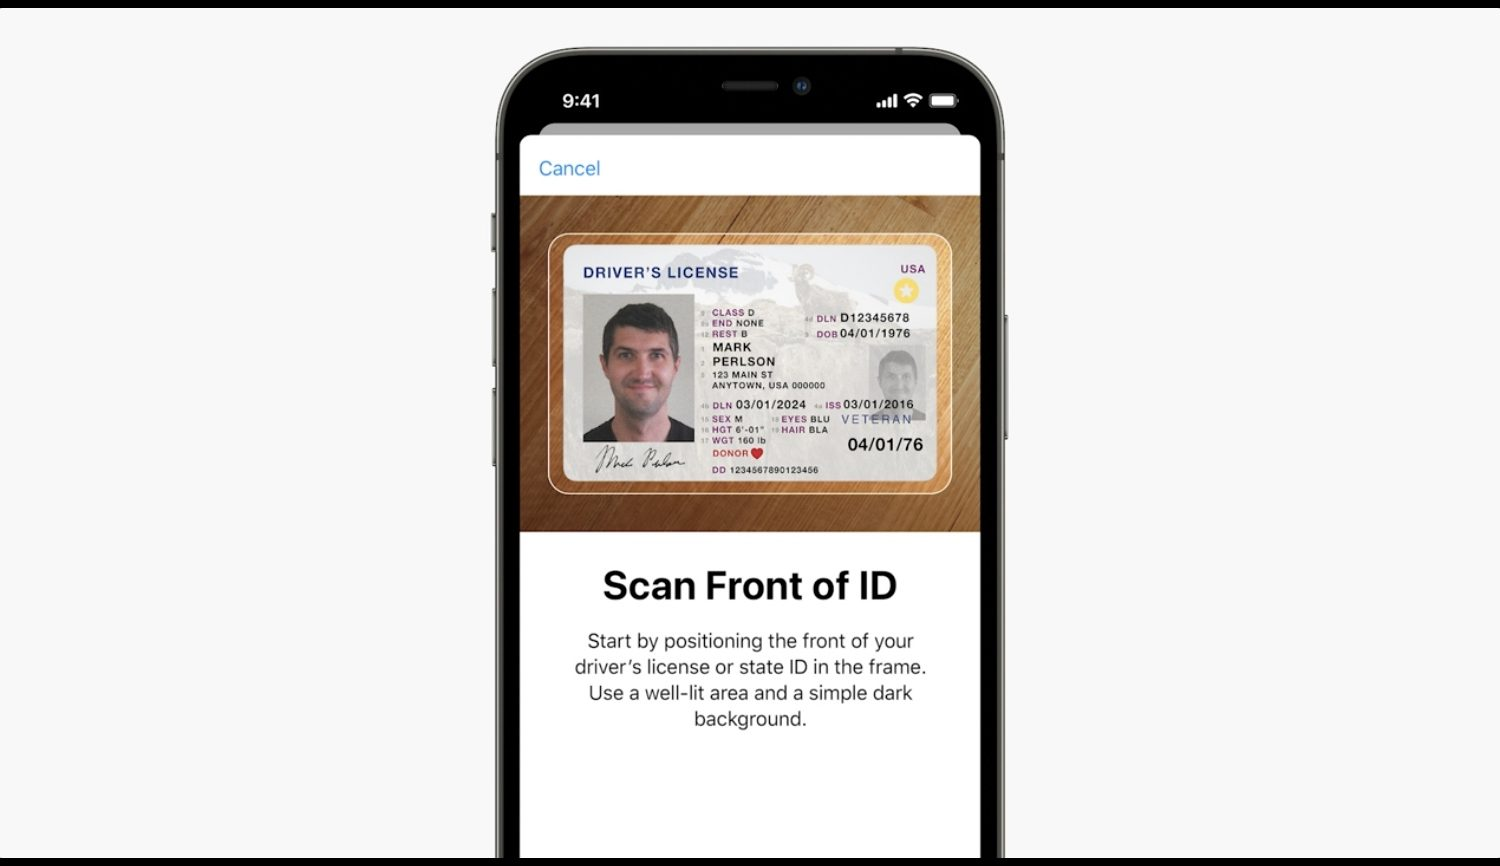 Apple's promotional image for iOS 15 showing an iPhone with a user's driver's license in the Wallet app